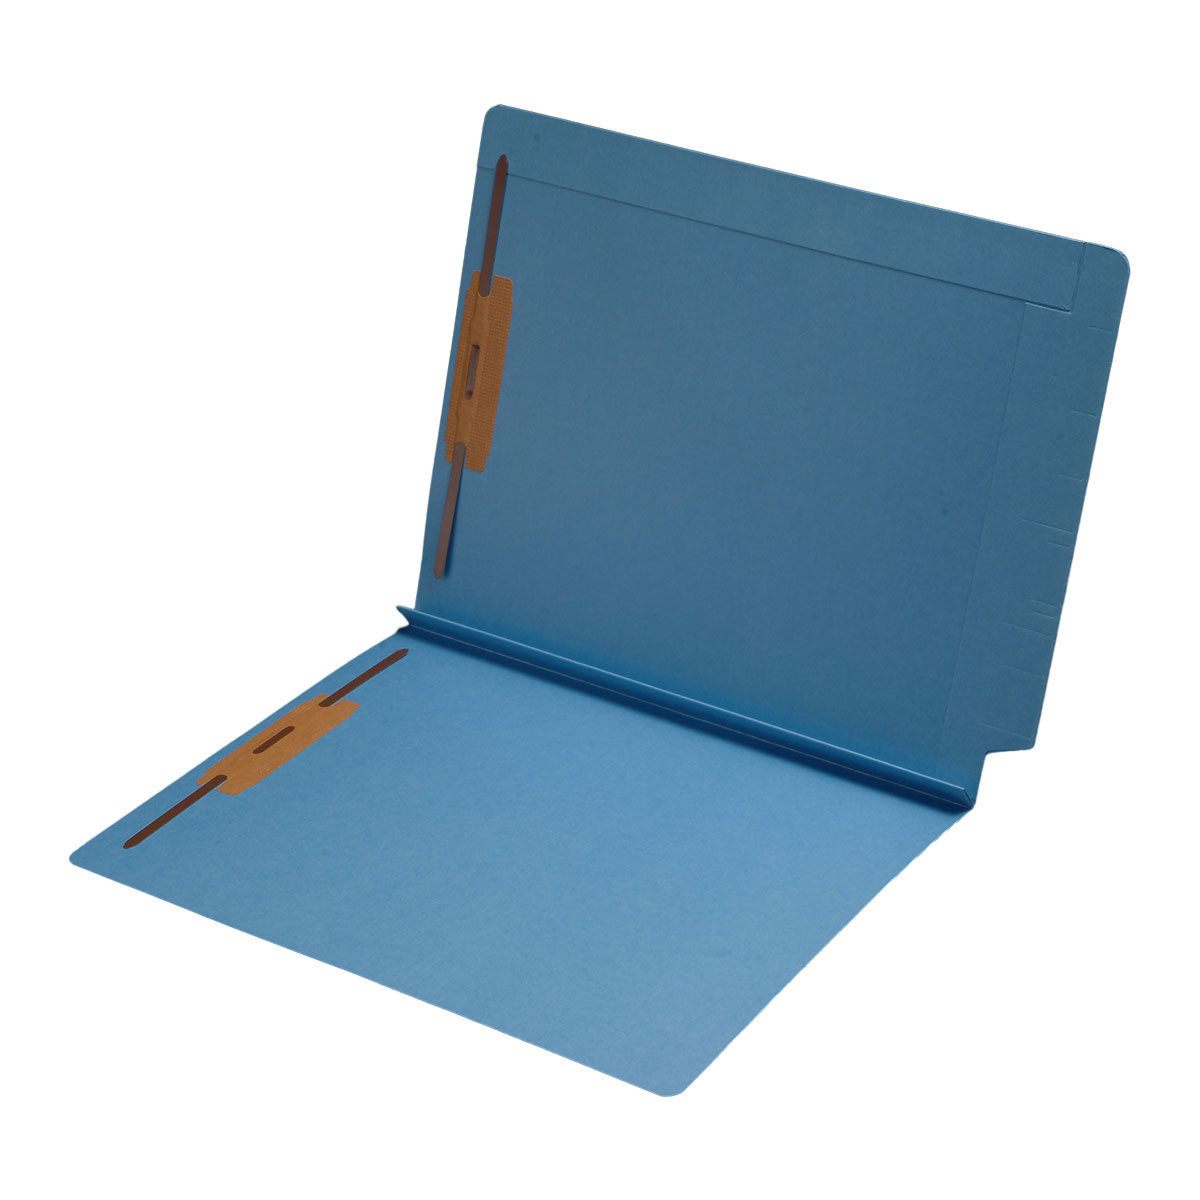 S-9078-BLU - 14 pt Color Folders, Full Cut 2-Ply End Tab, Letter Size, 1-1/2